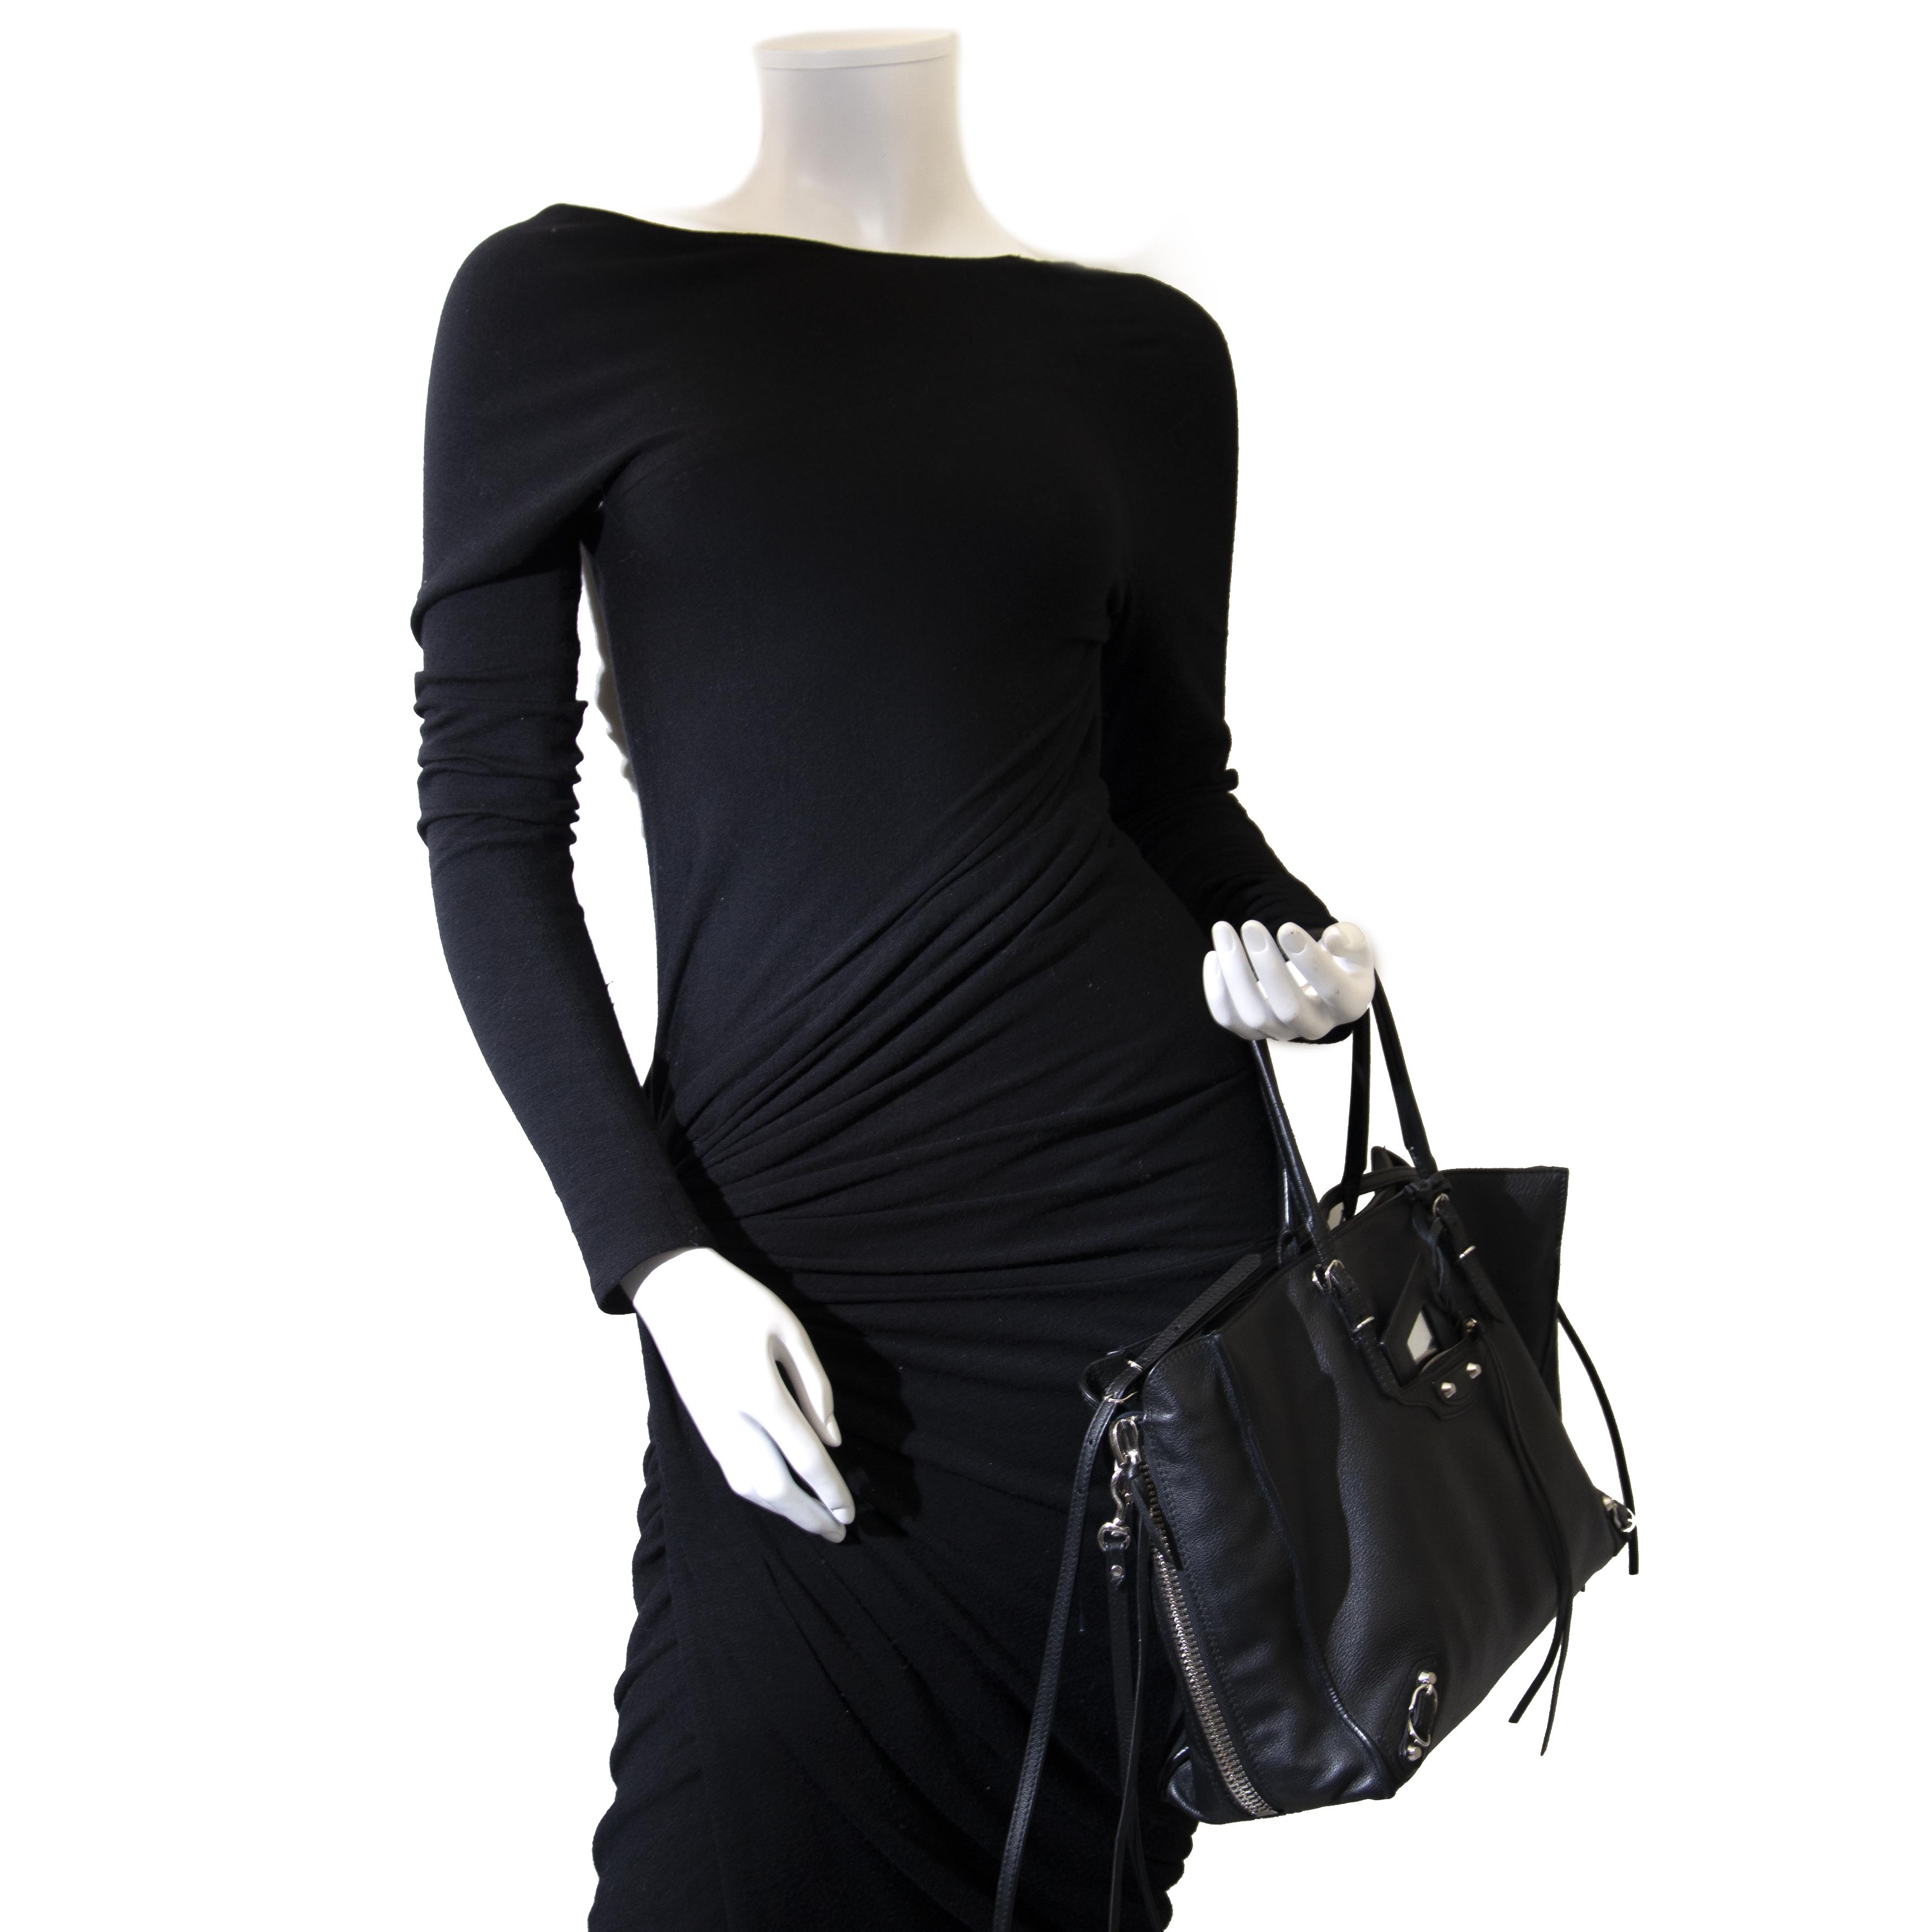 Balenciaga Black Papier B4 Zip Around Tote Bag for the best price at Labellov secondhand luxury